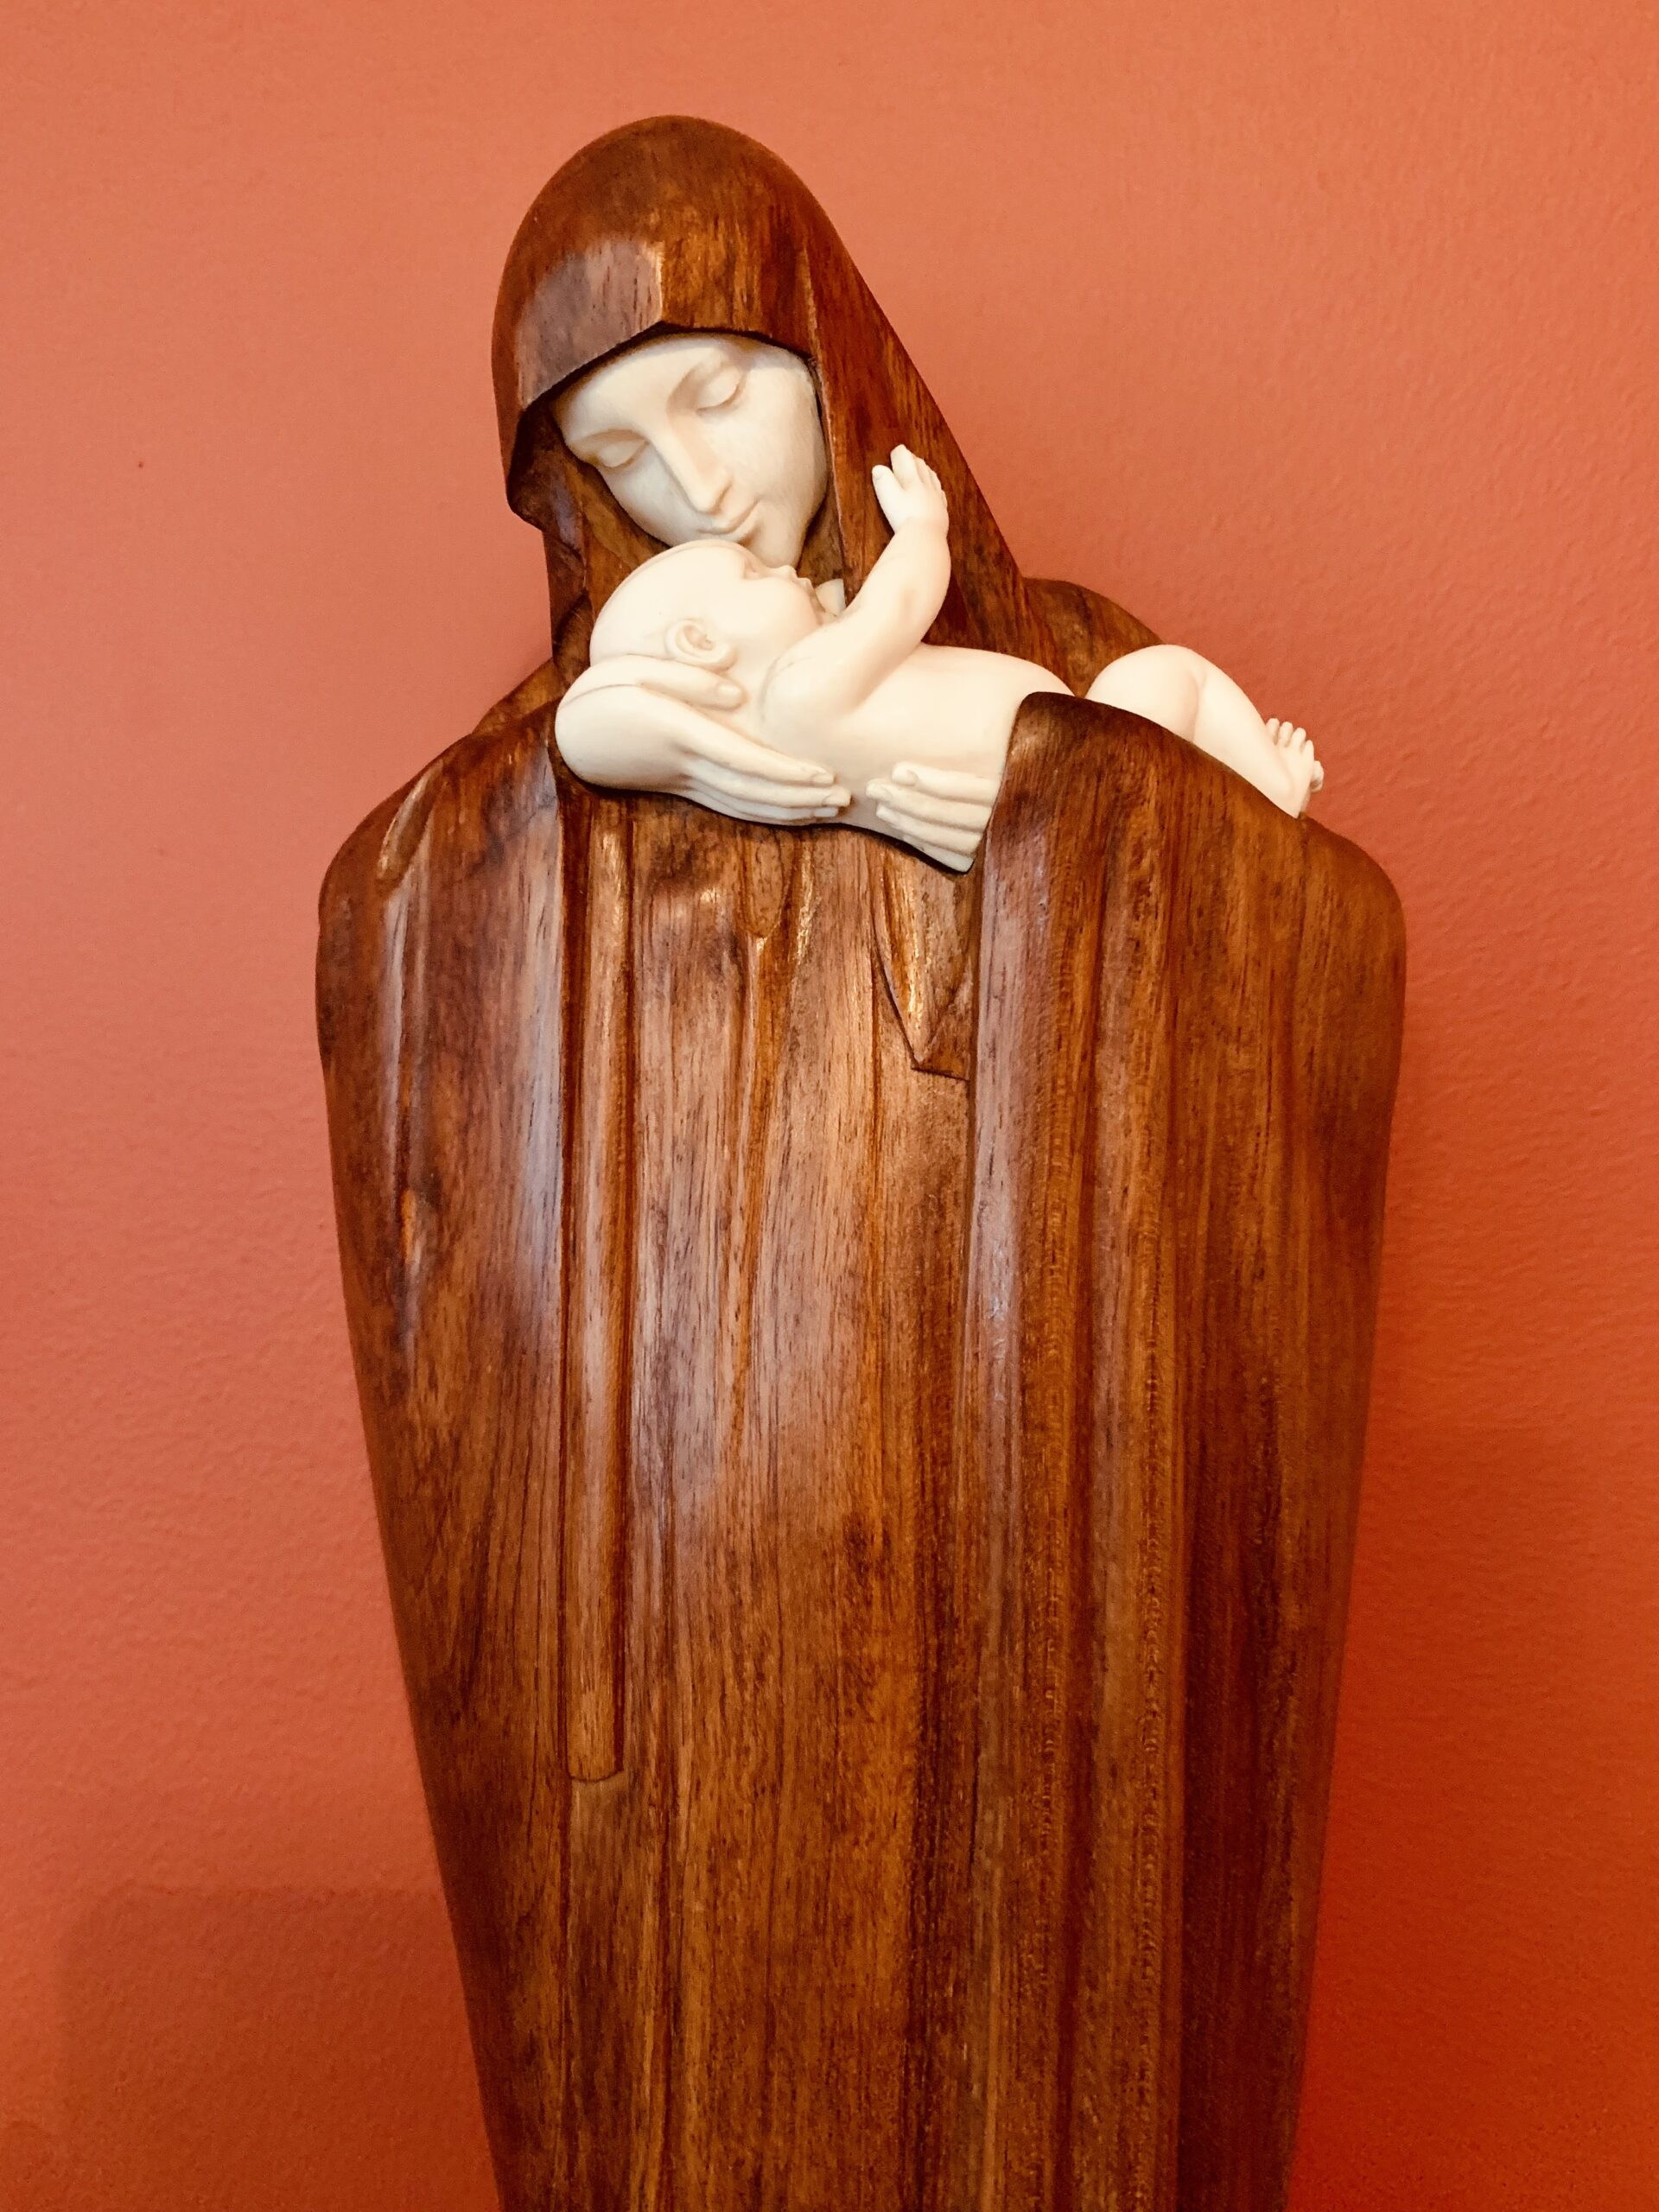 wooden statue of mary with infant jesus